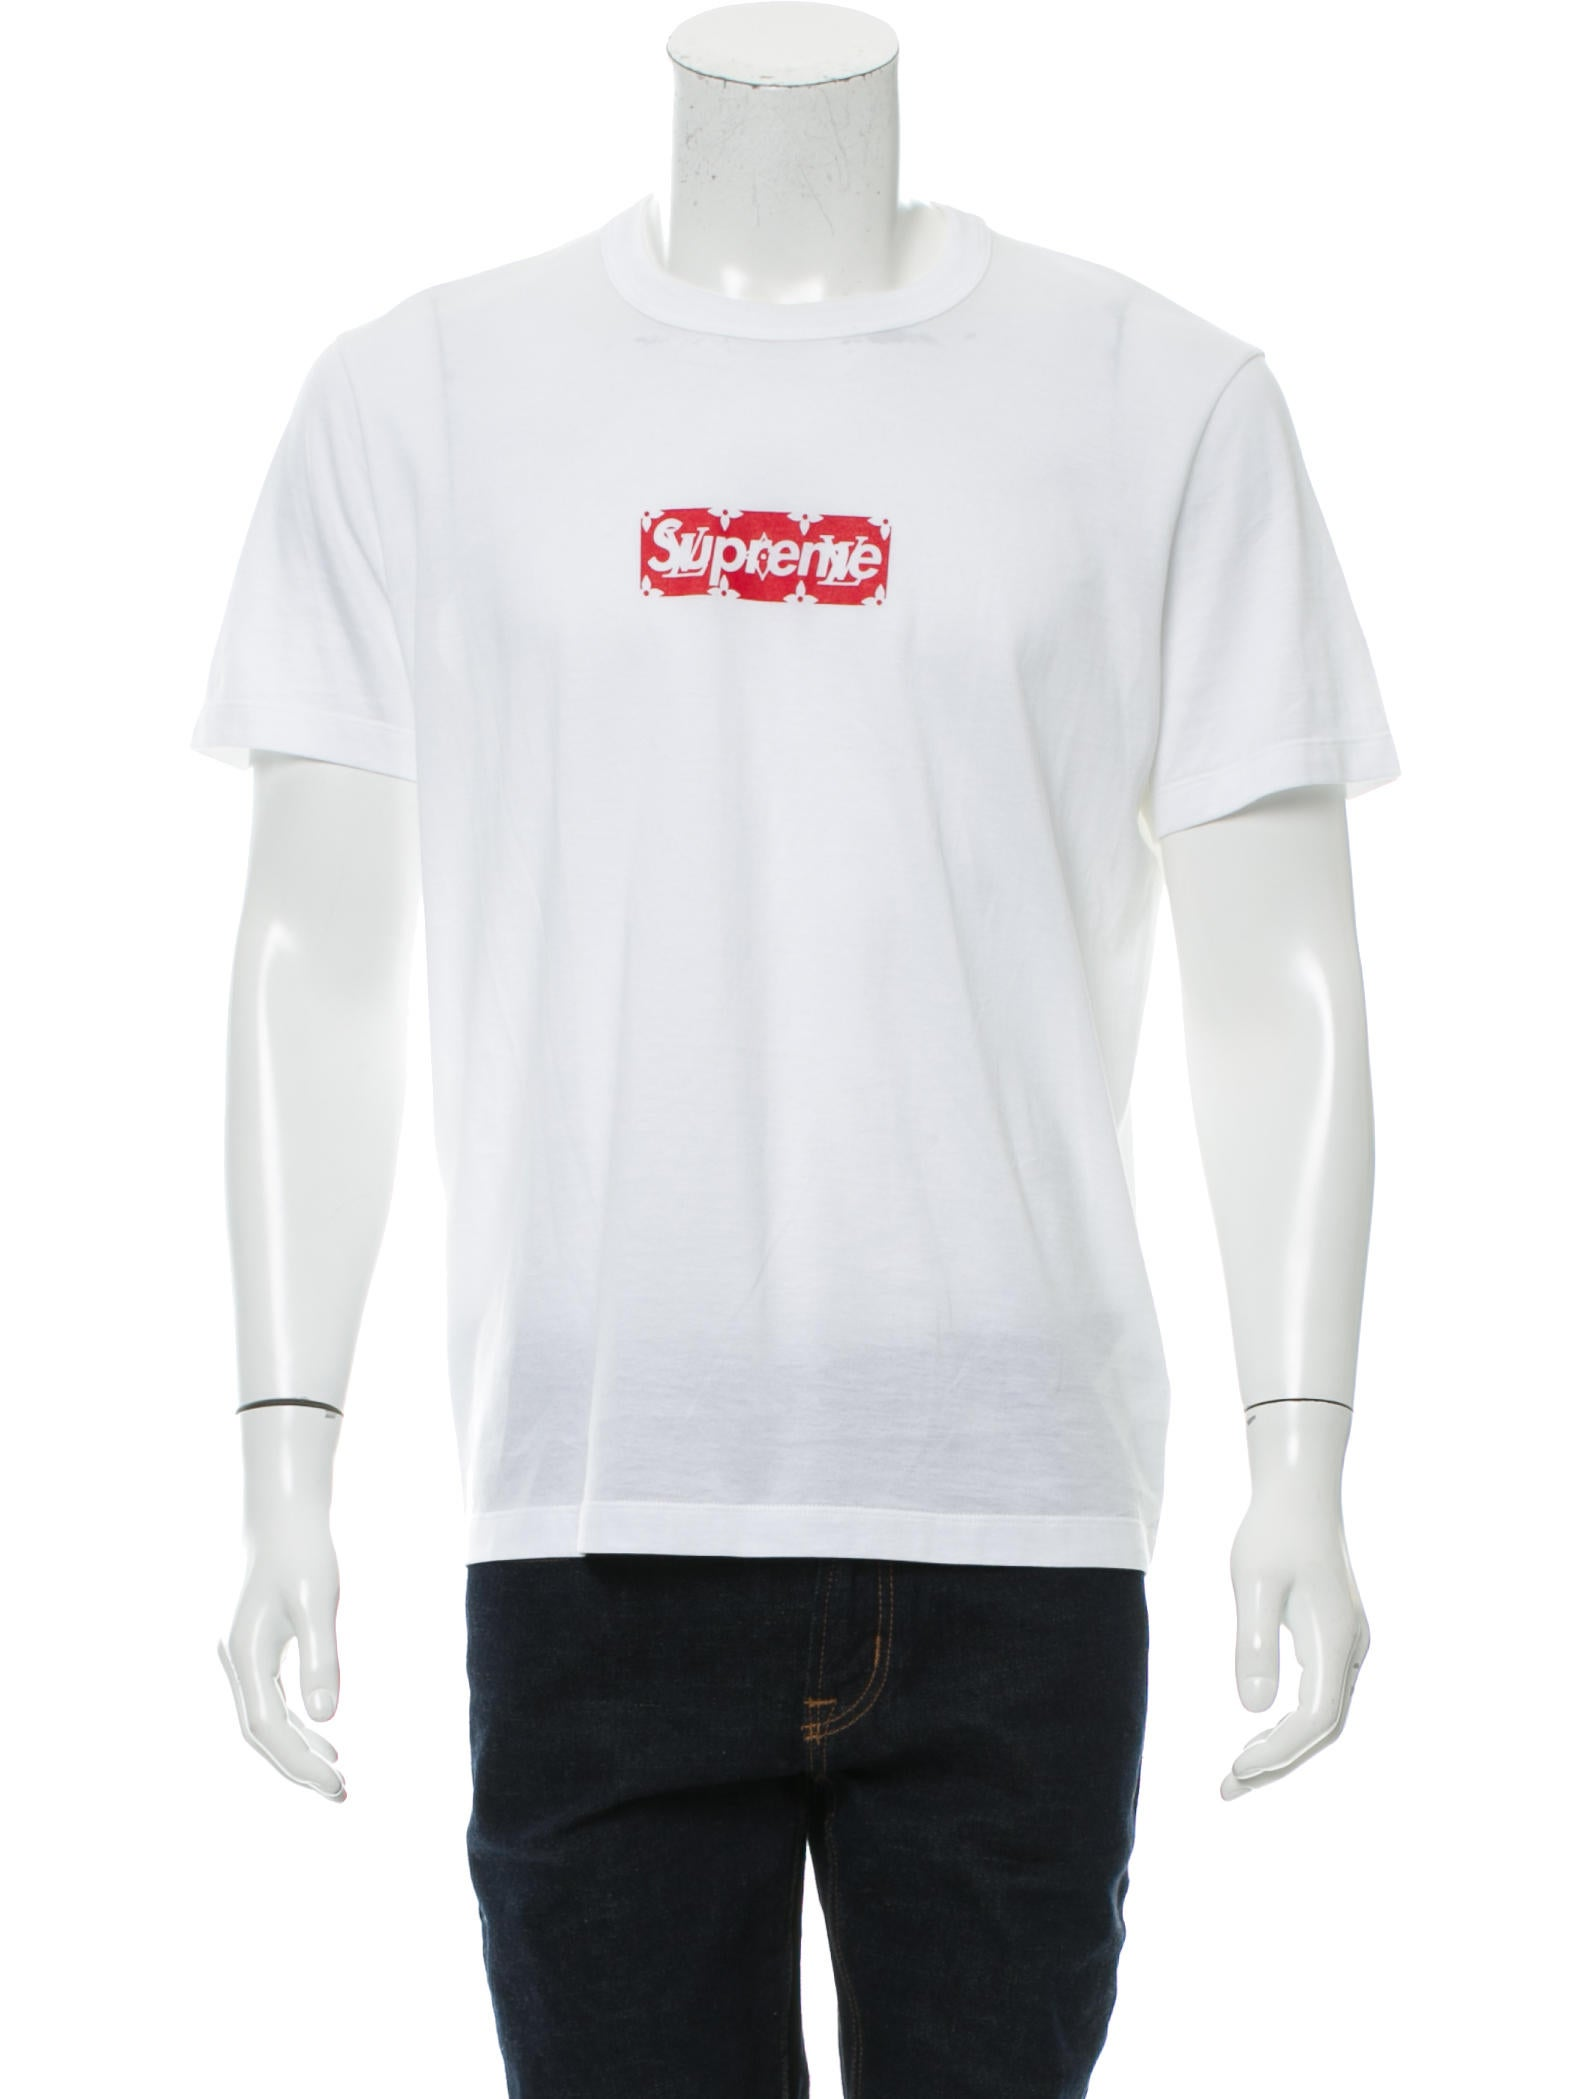 Louis Vuitton x Supreme Box Logo T shirt Clothing  : LOUSU200061enlarged from www.therealreal.com size 1591 x 2099 jpeg 105kB